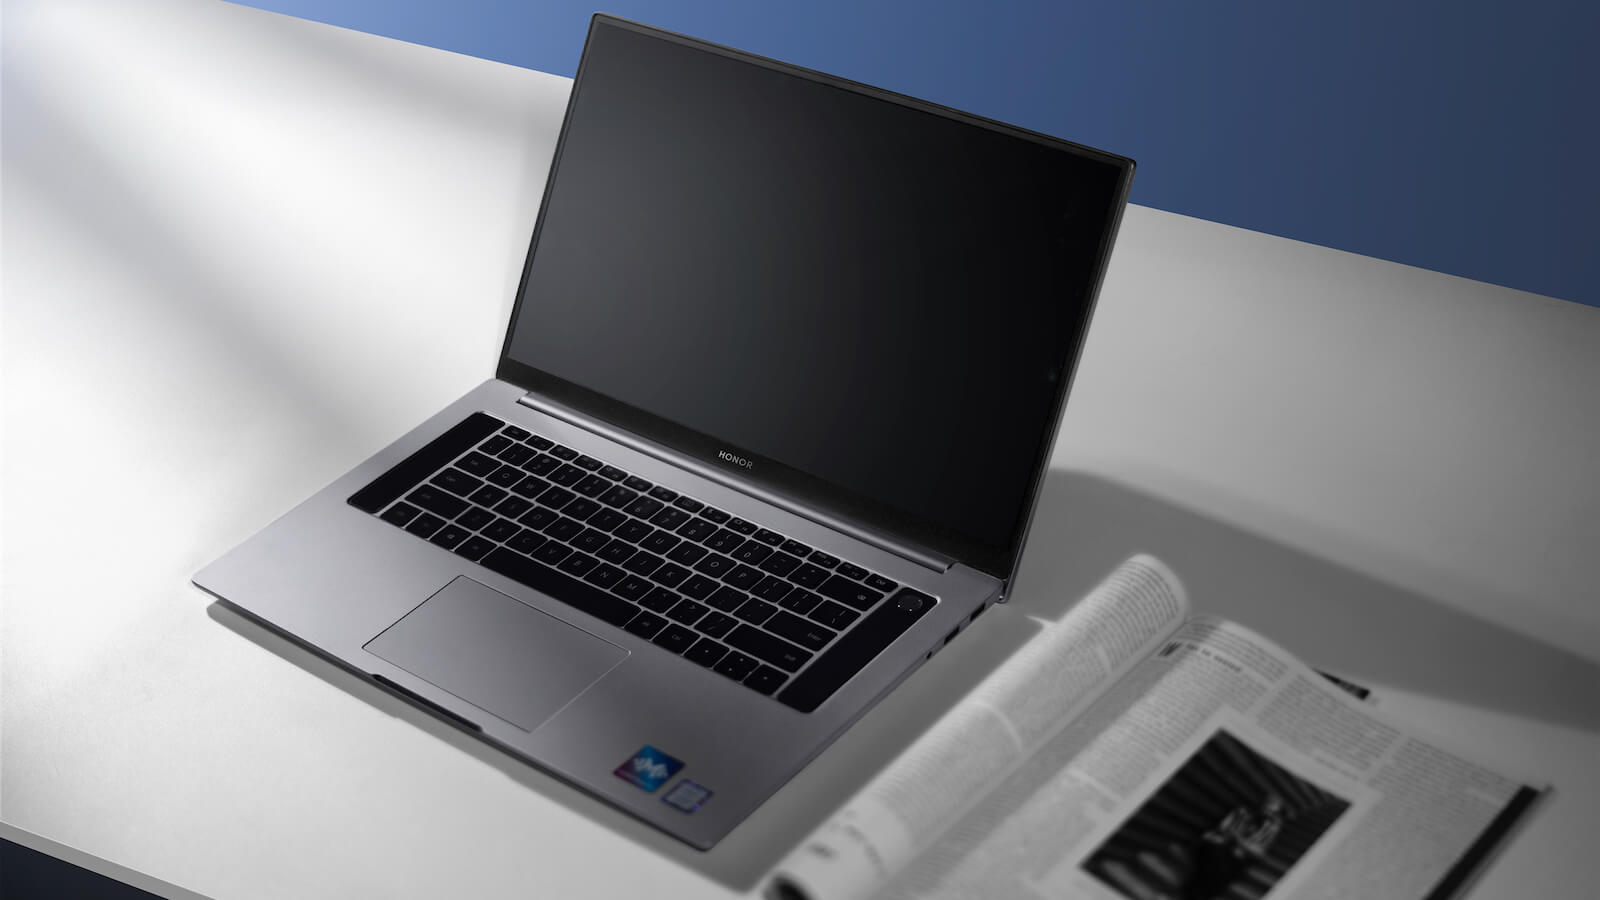 HONOR MagicBook Pro compact laptop has a Full HD FullView Display